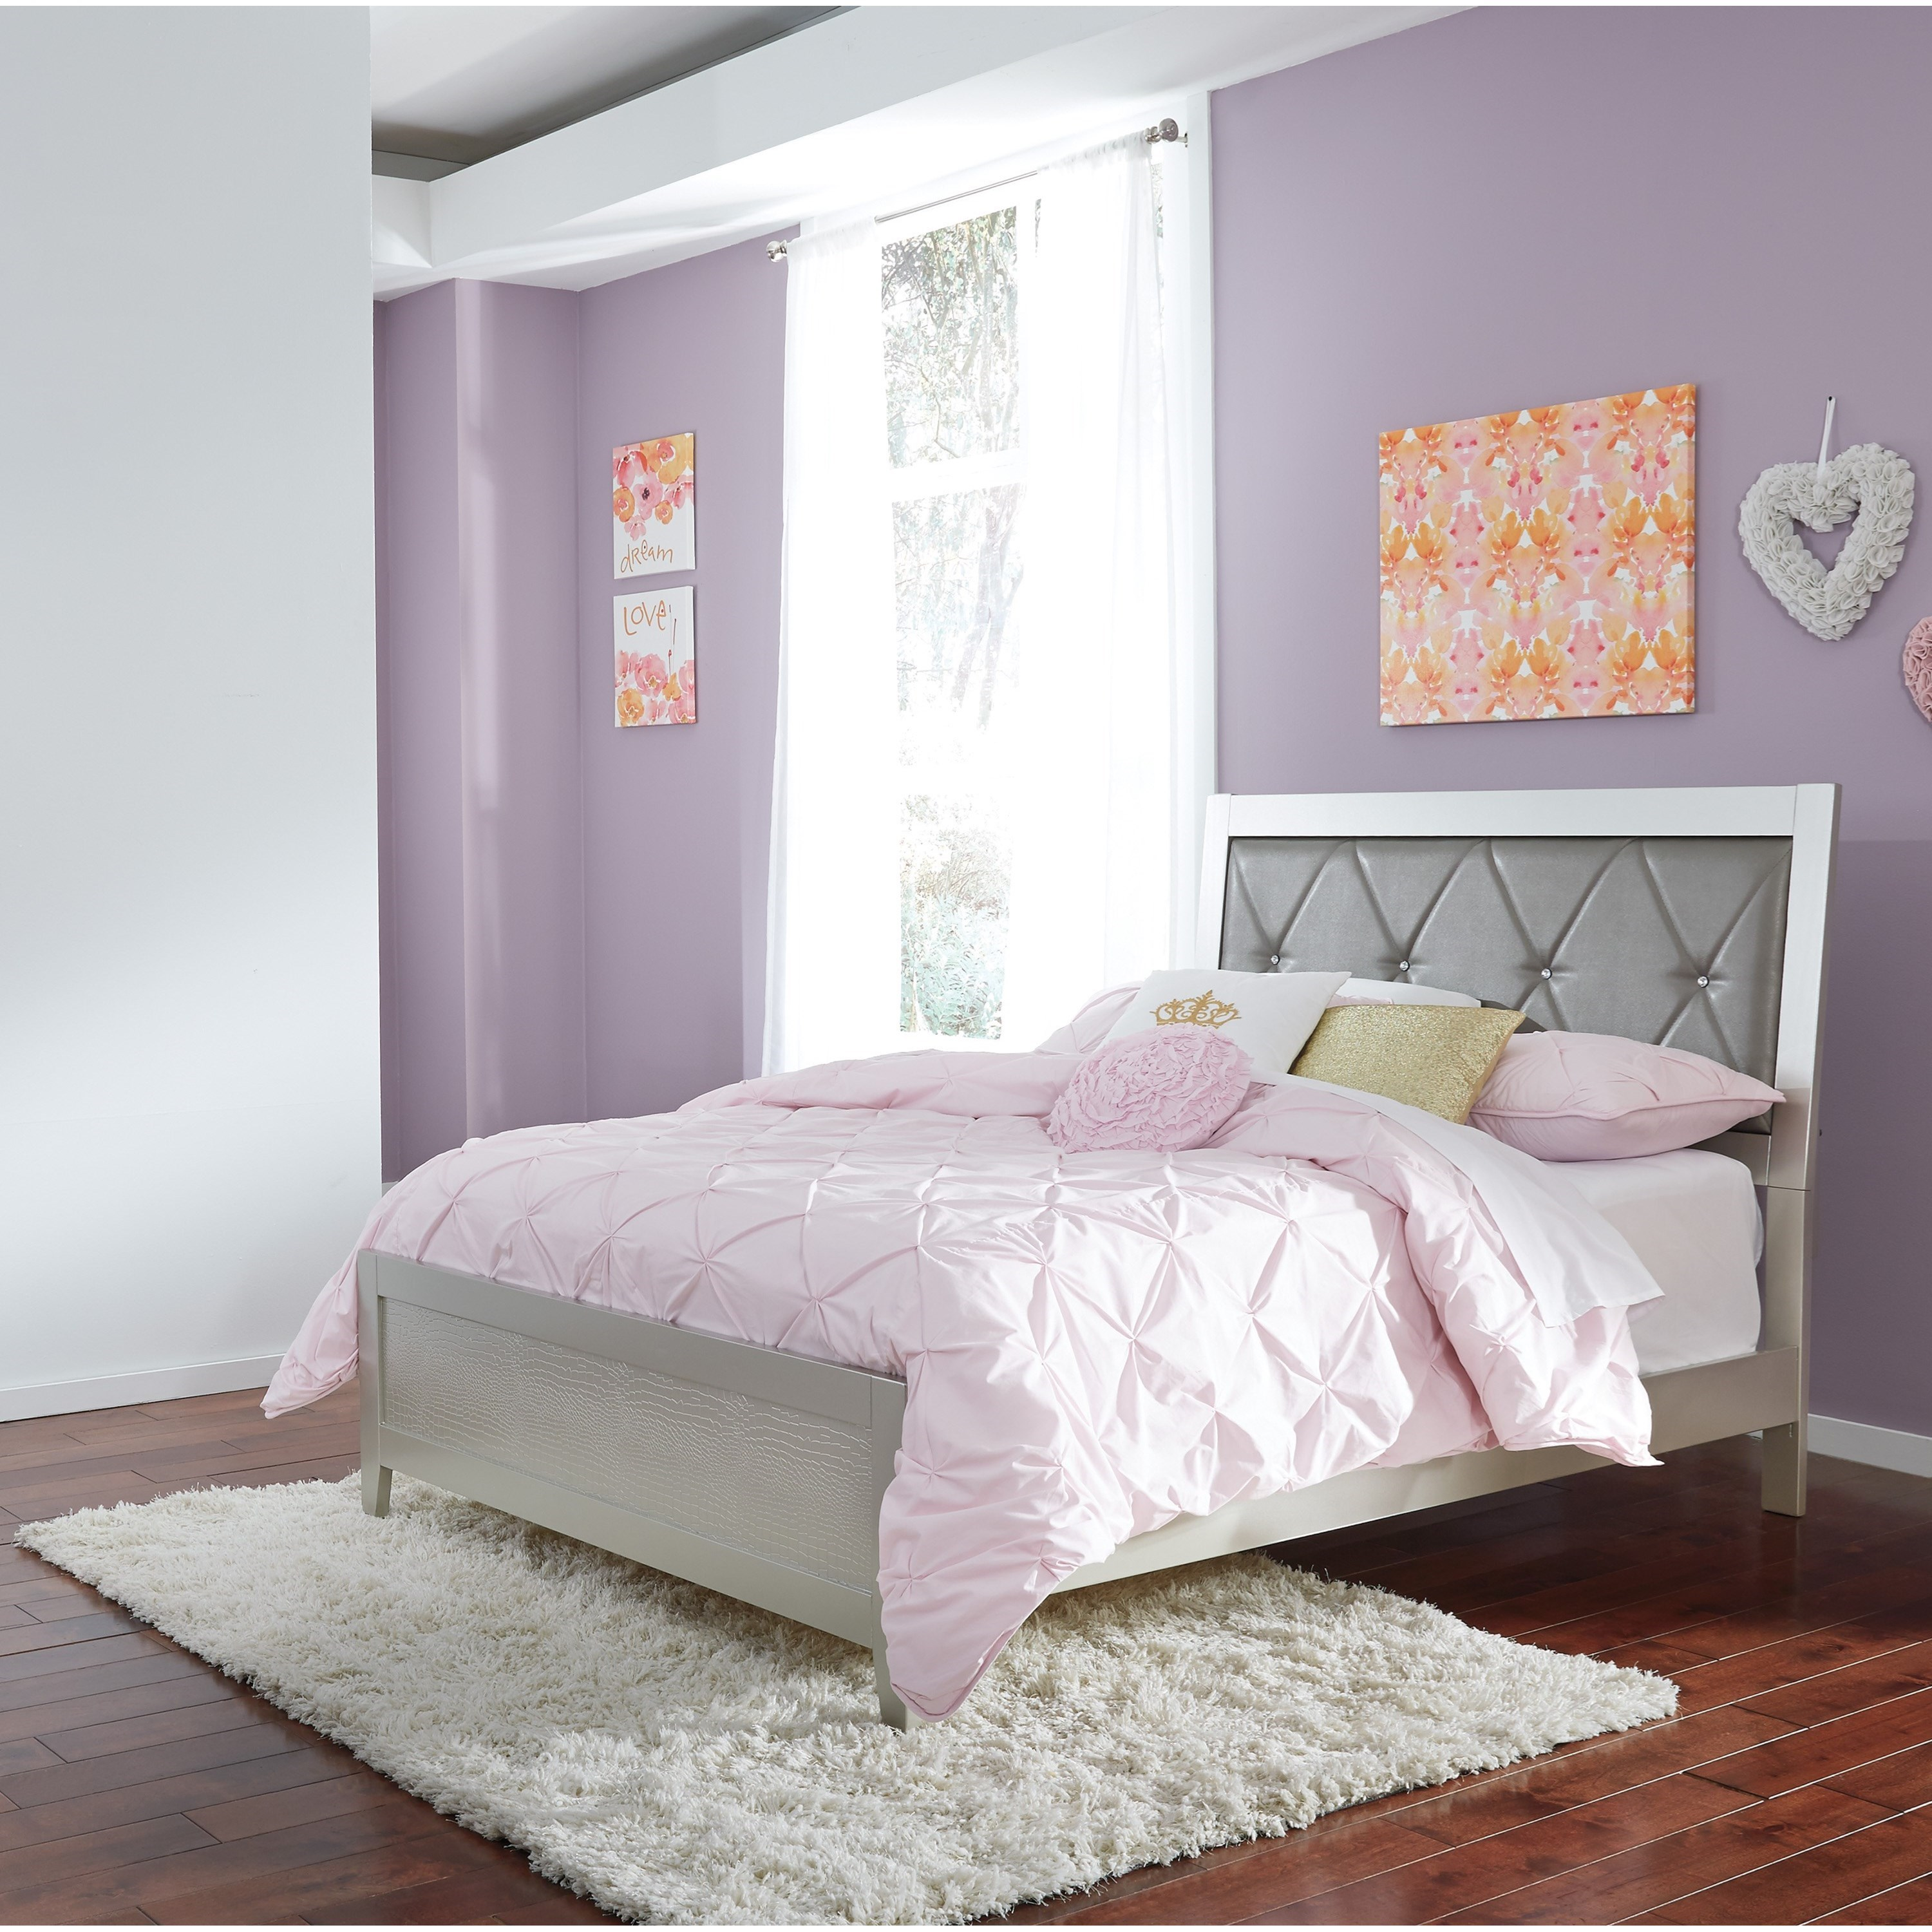 Signature design by ashley olivet glam full panel bed with - Ashley furniture full bedroom sets ...